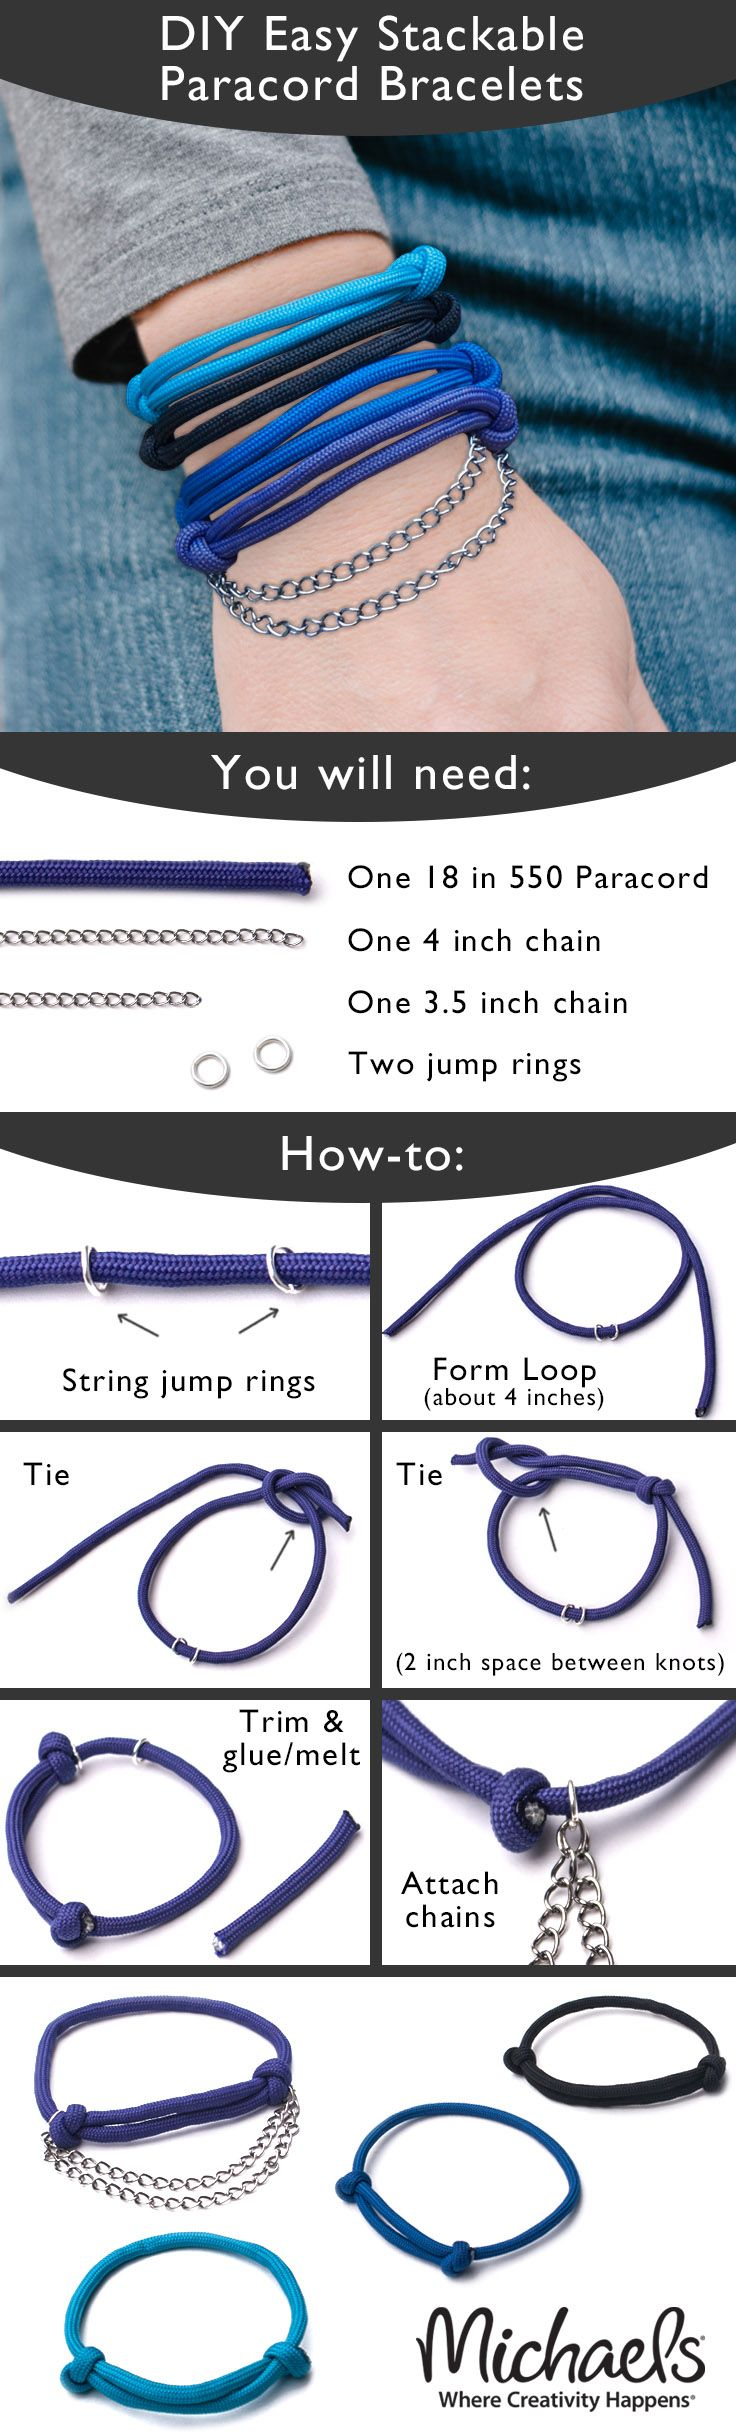 Colorful paracord makes it easy to create these DIY Stackable Bracelets to match your wardrobe